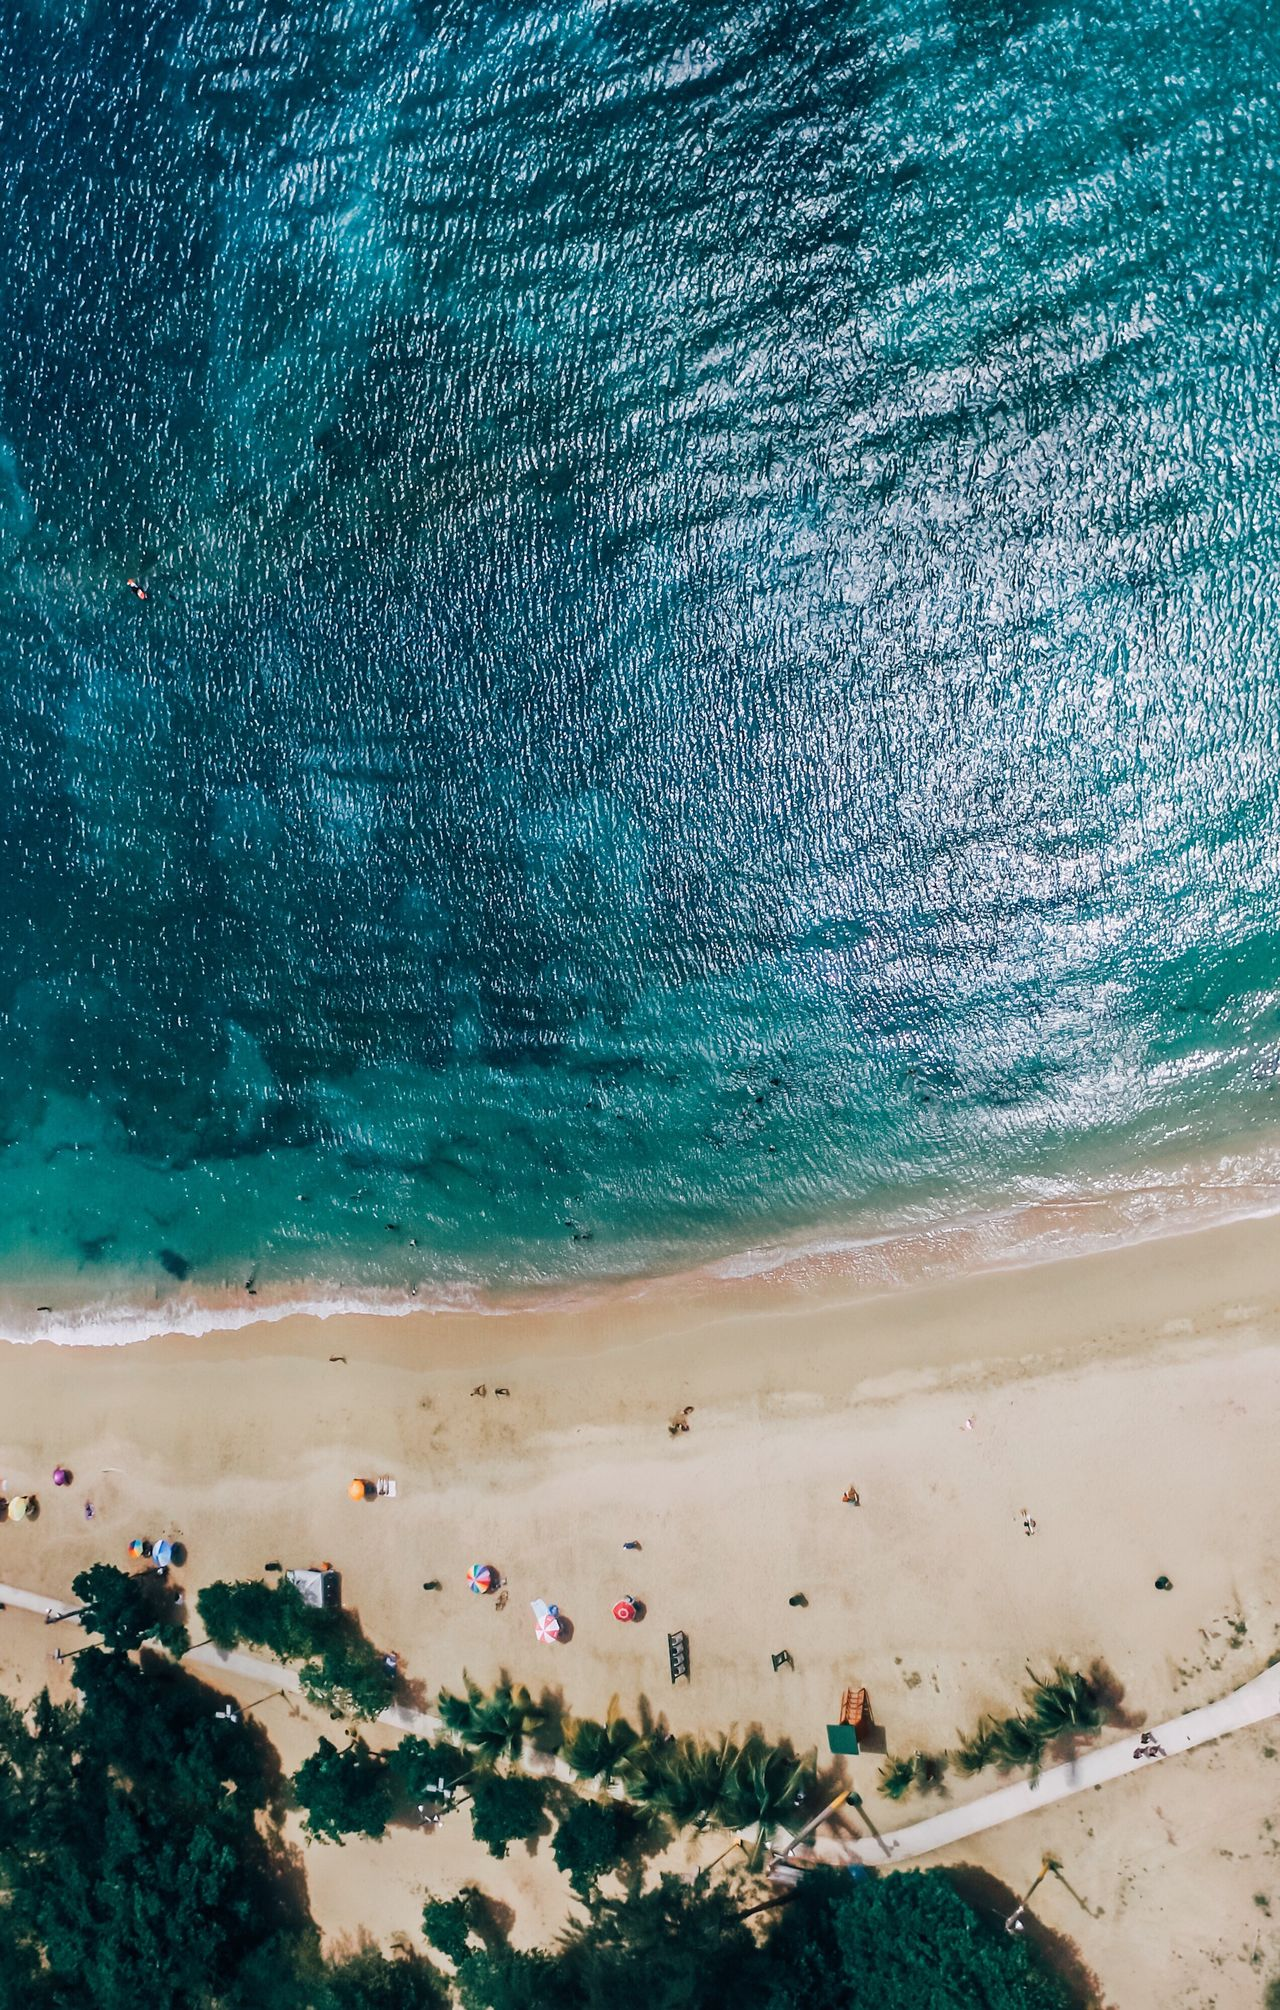 Aerial View Dronephotography Beach Sand Sea Water Nature Beauty In Nature Scenics Outdoors High Angle View Vacations Day Blue Travel Destinations Real People Wave Horizon Over Water Tree Sky Hot Spring Aerial Shot Aerial Photography Ocean View Drone